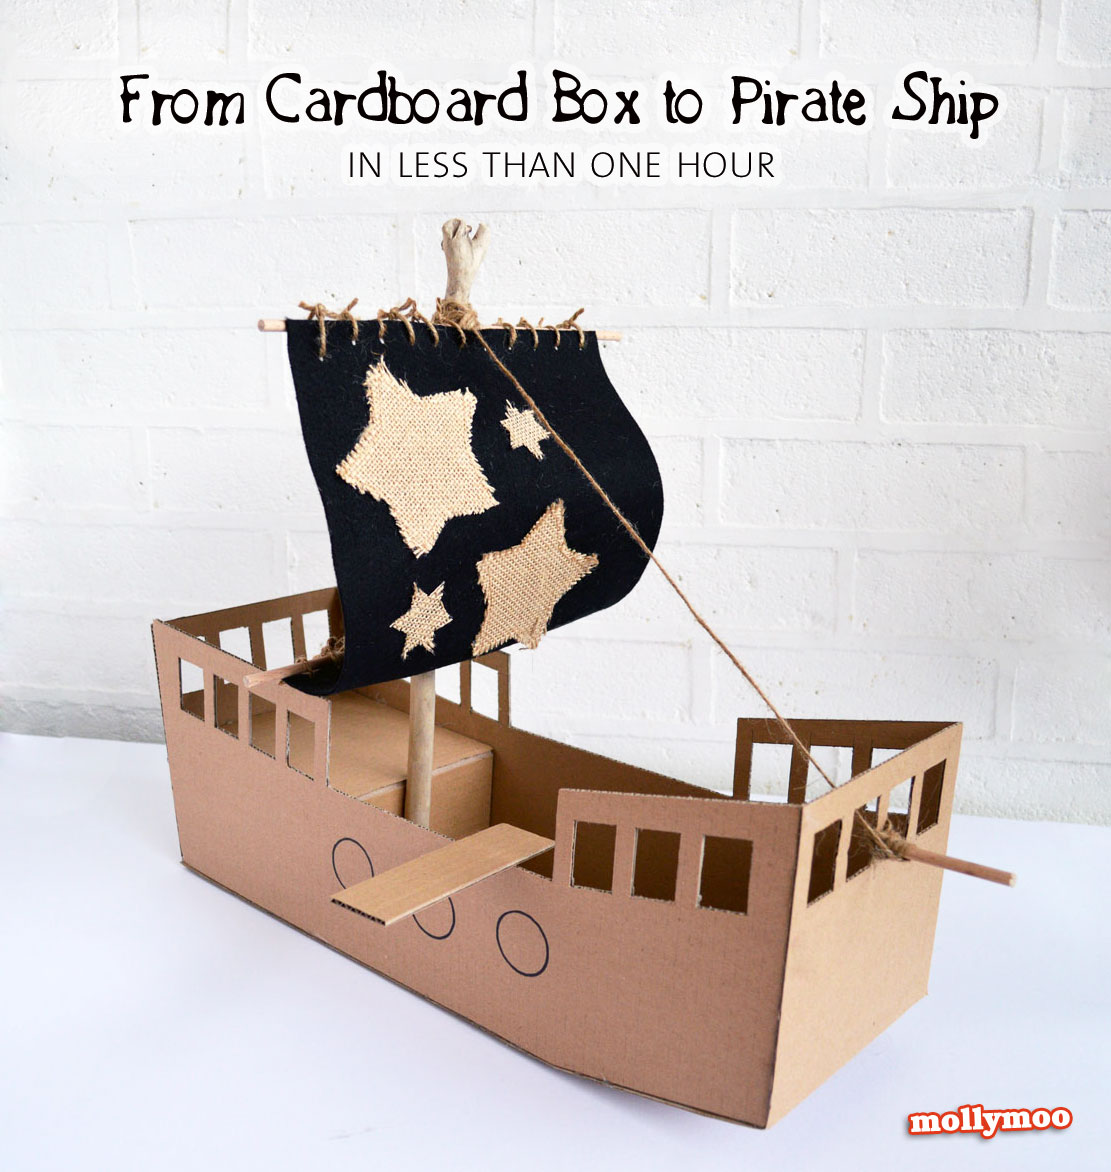 mollymoo-cardboard-pirate-ship-pinterest